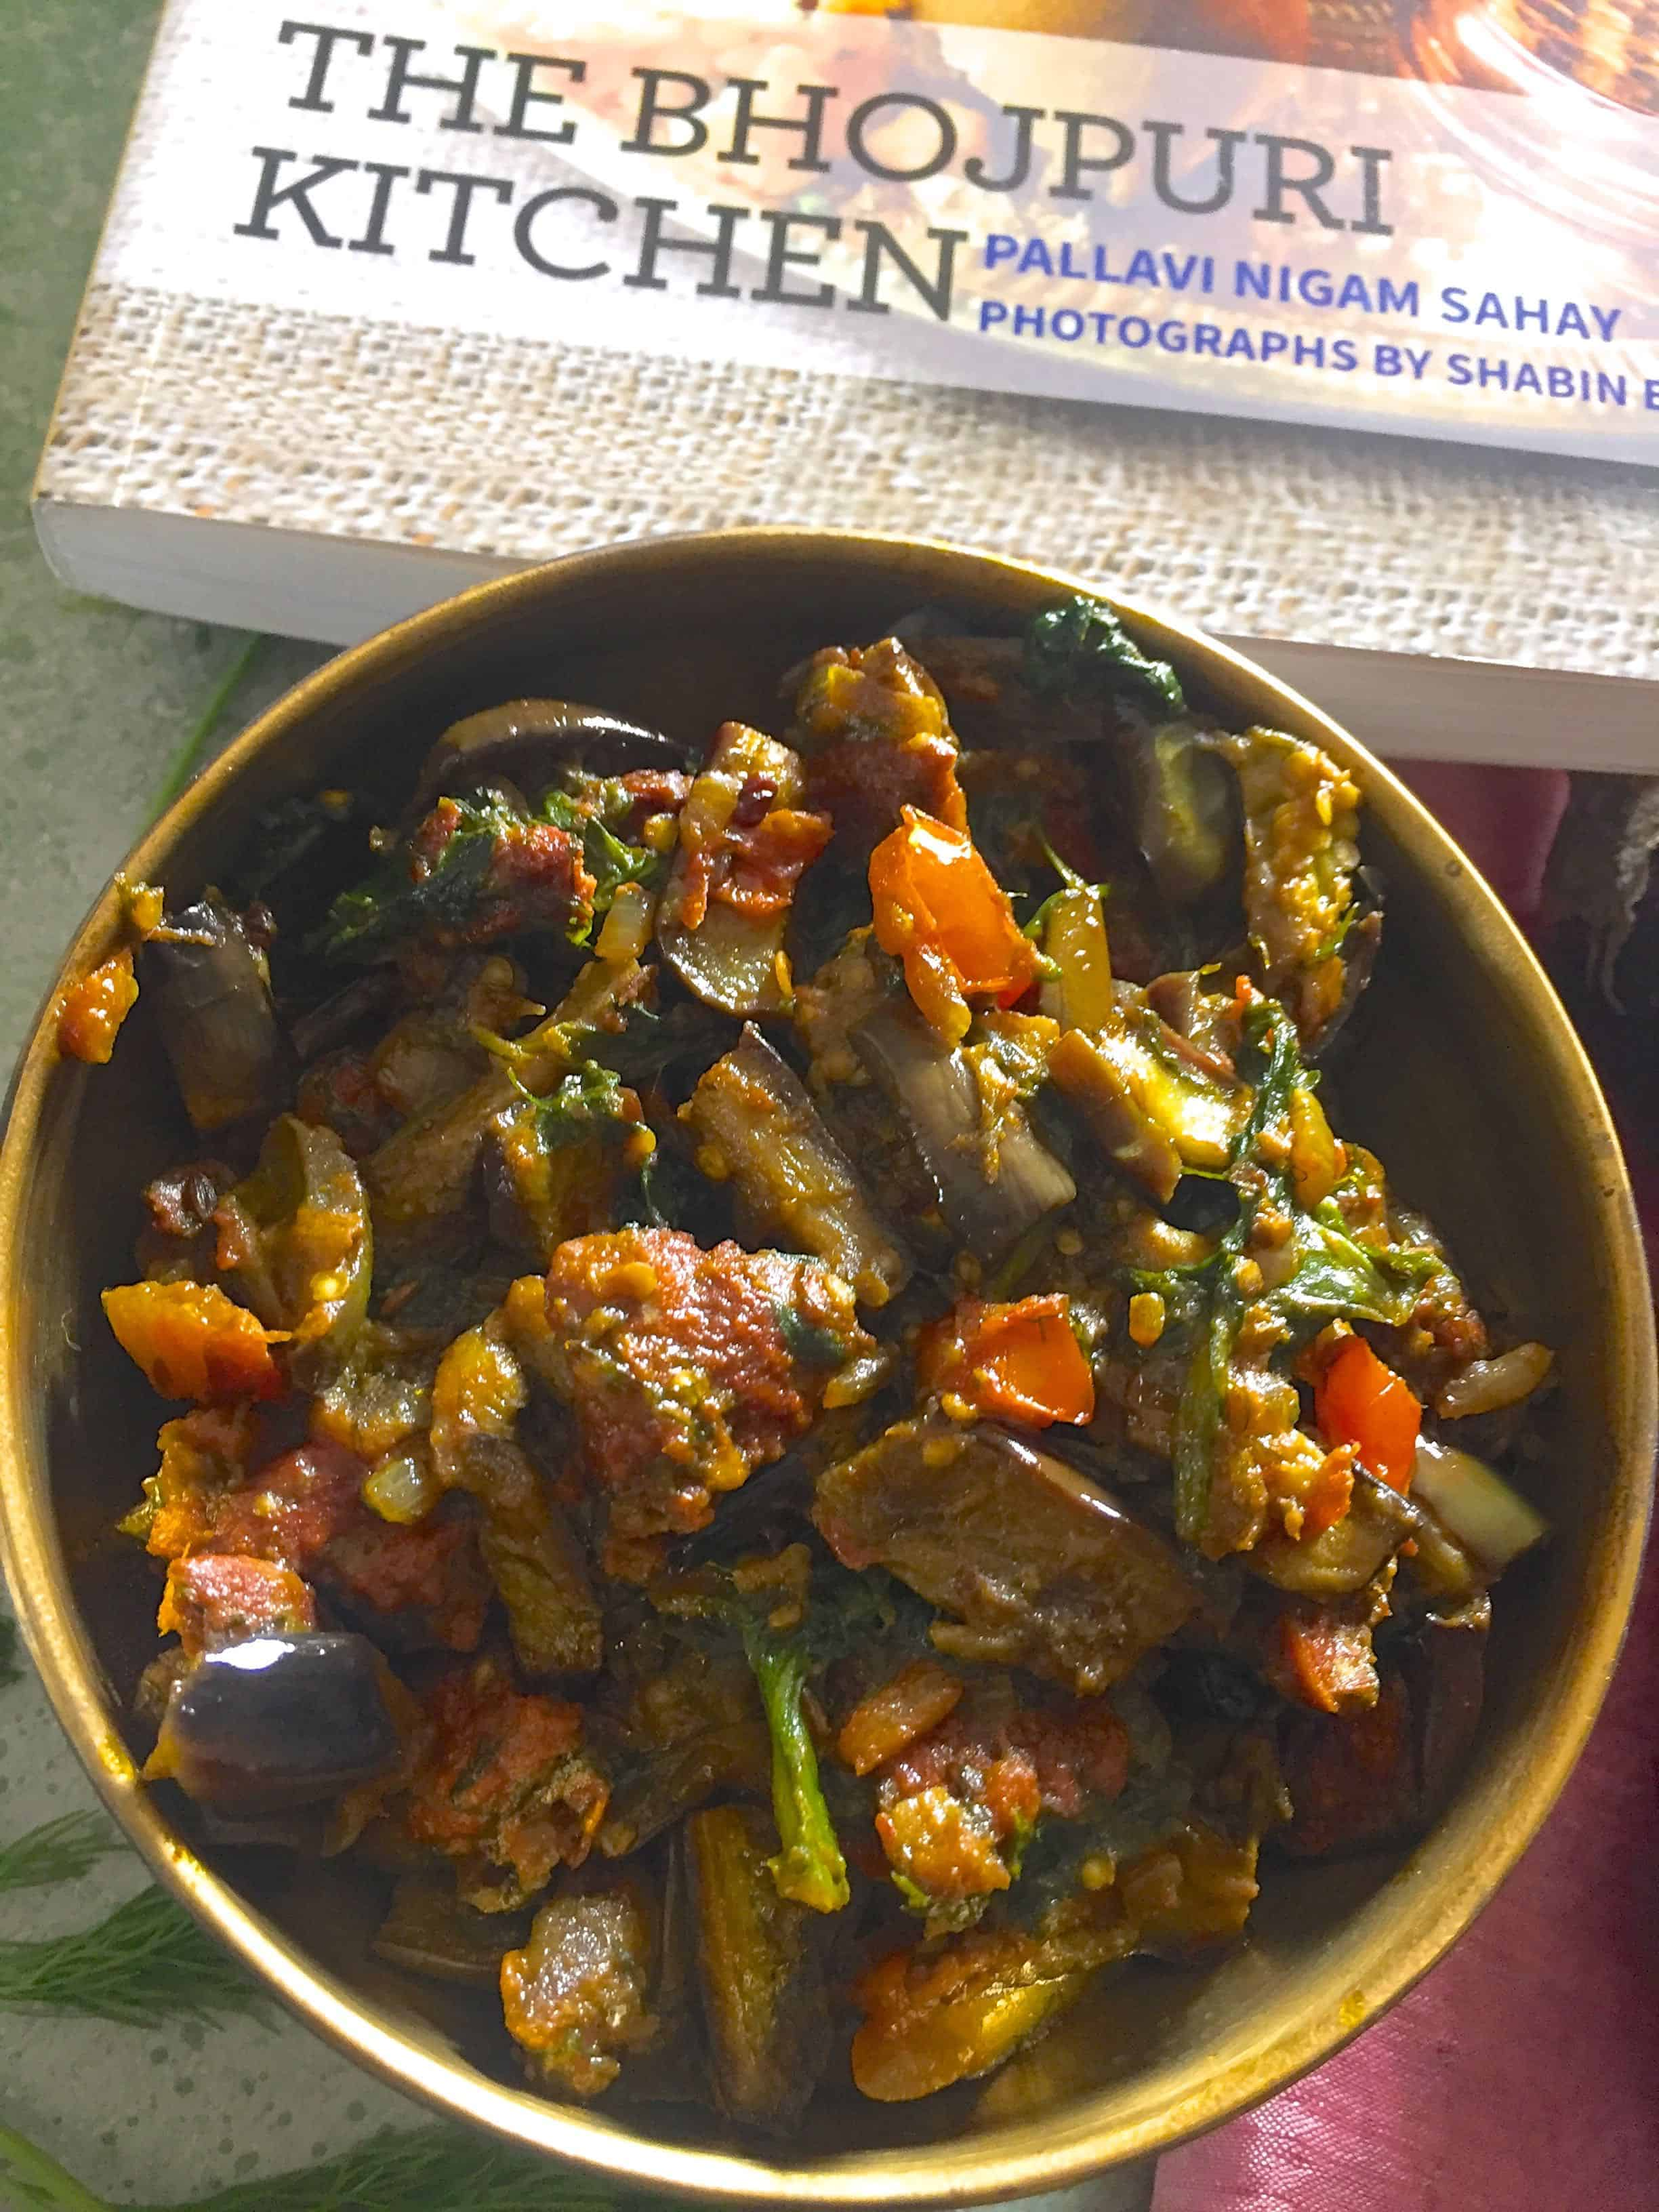 Brass bowl filled with brinjal curry with red tomatoes, lentil fritters and dill. A book on Bihari Cuisine in the background, a pale pink emroidered saree in the background